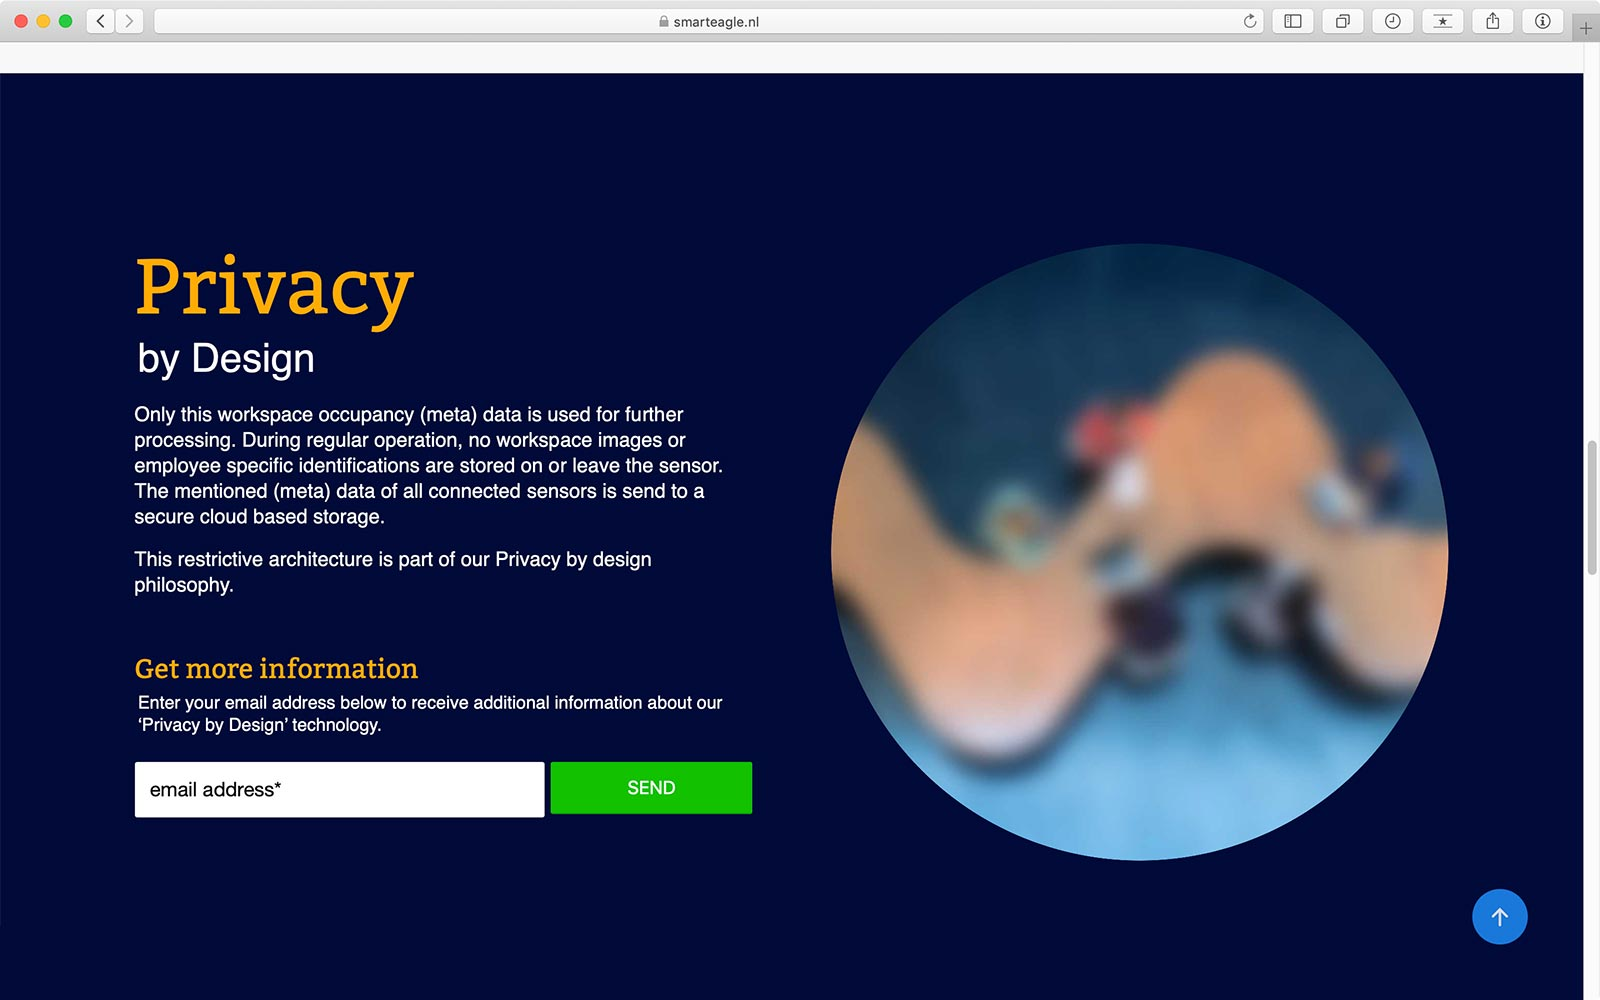 Privacy by Design - website SmartEagle